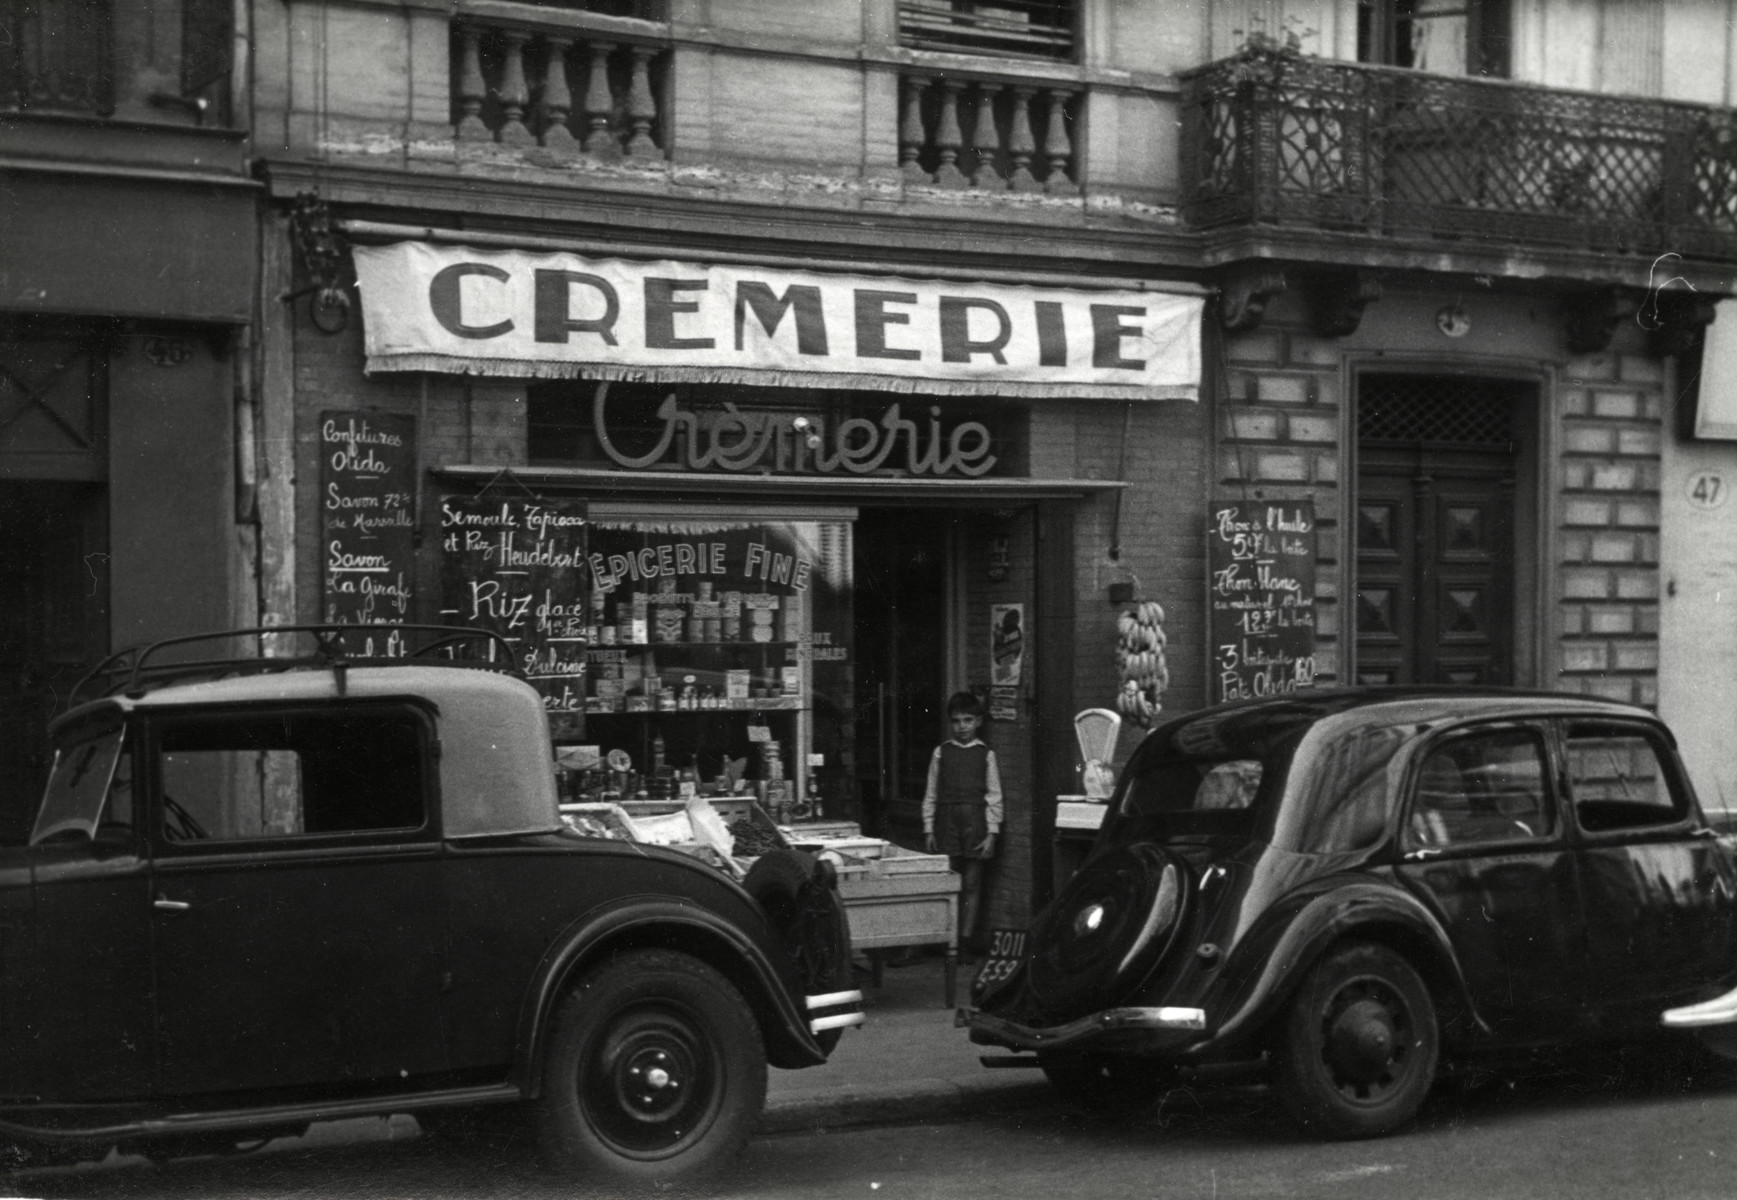 View of two automobiles parked outside the Cheraki's grocery store in Toulouse, France.